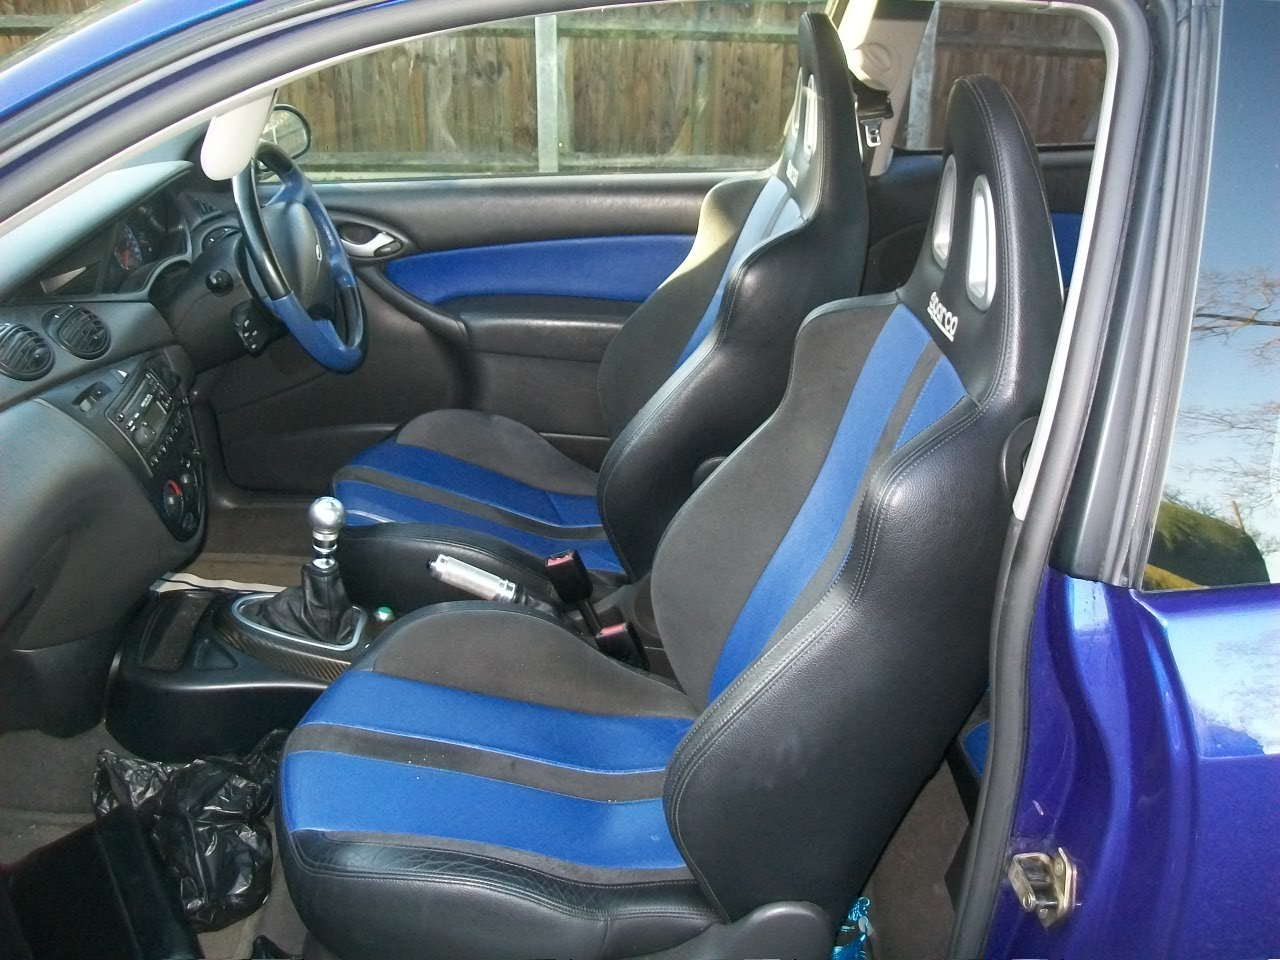 2003 Ford focus rs mk1 For Sale (picture 4 of 4)